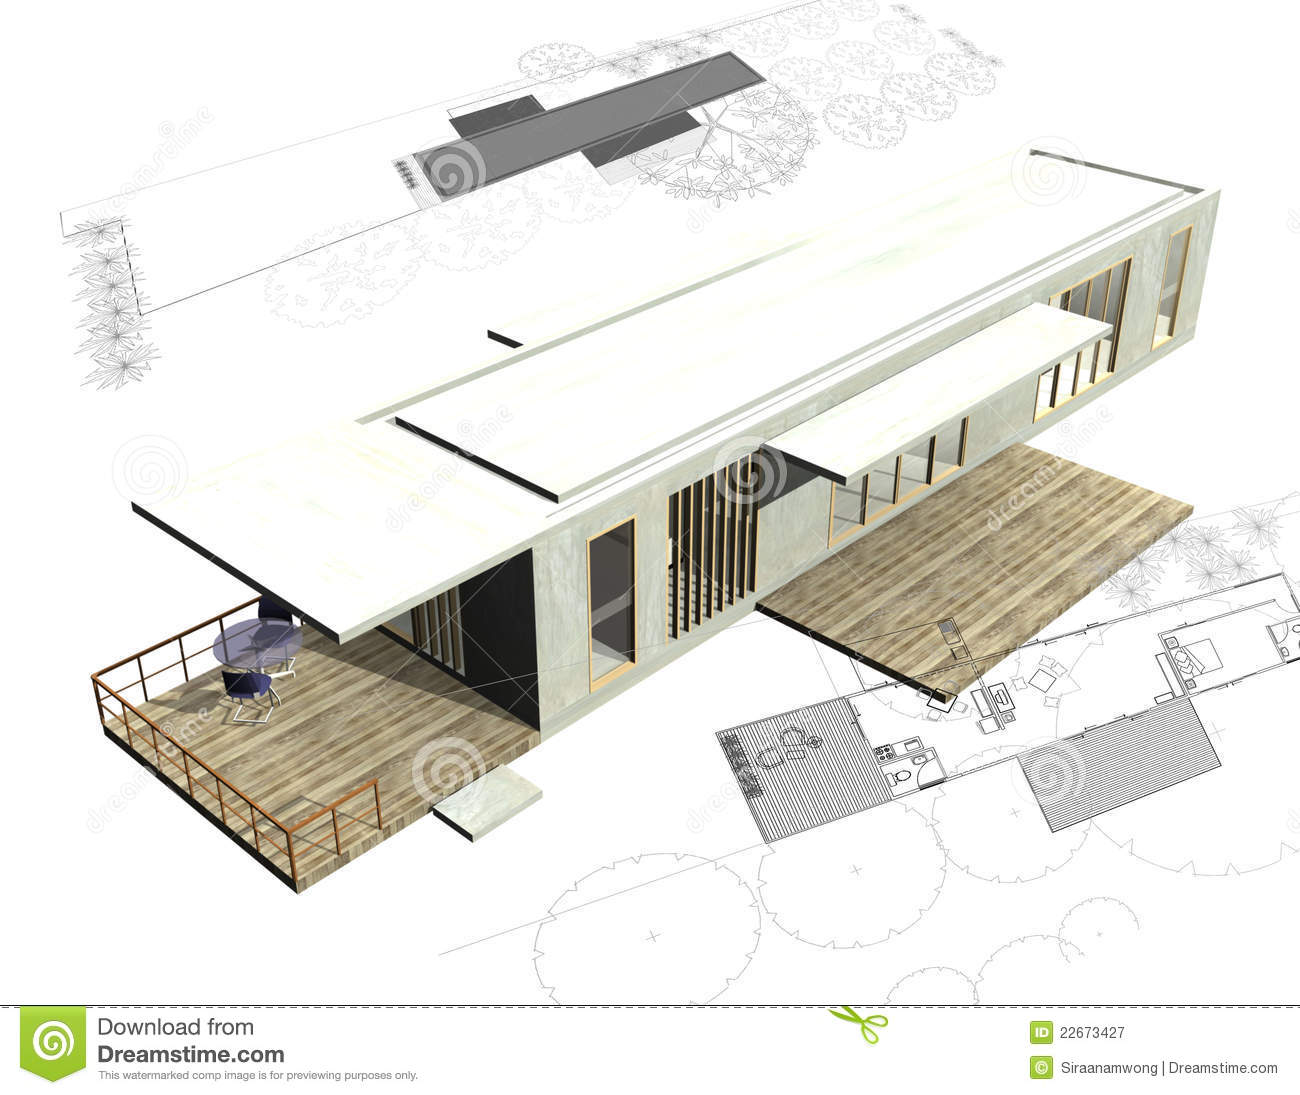 Housing architecture plans with 3d building stock for Build house online 3d free